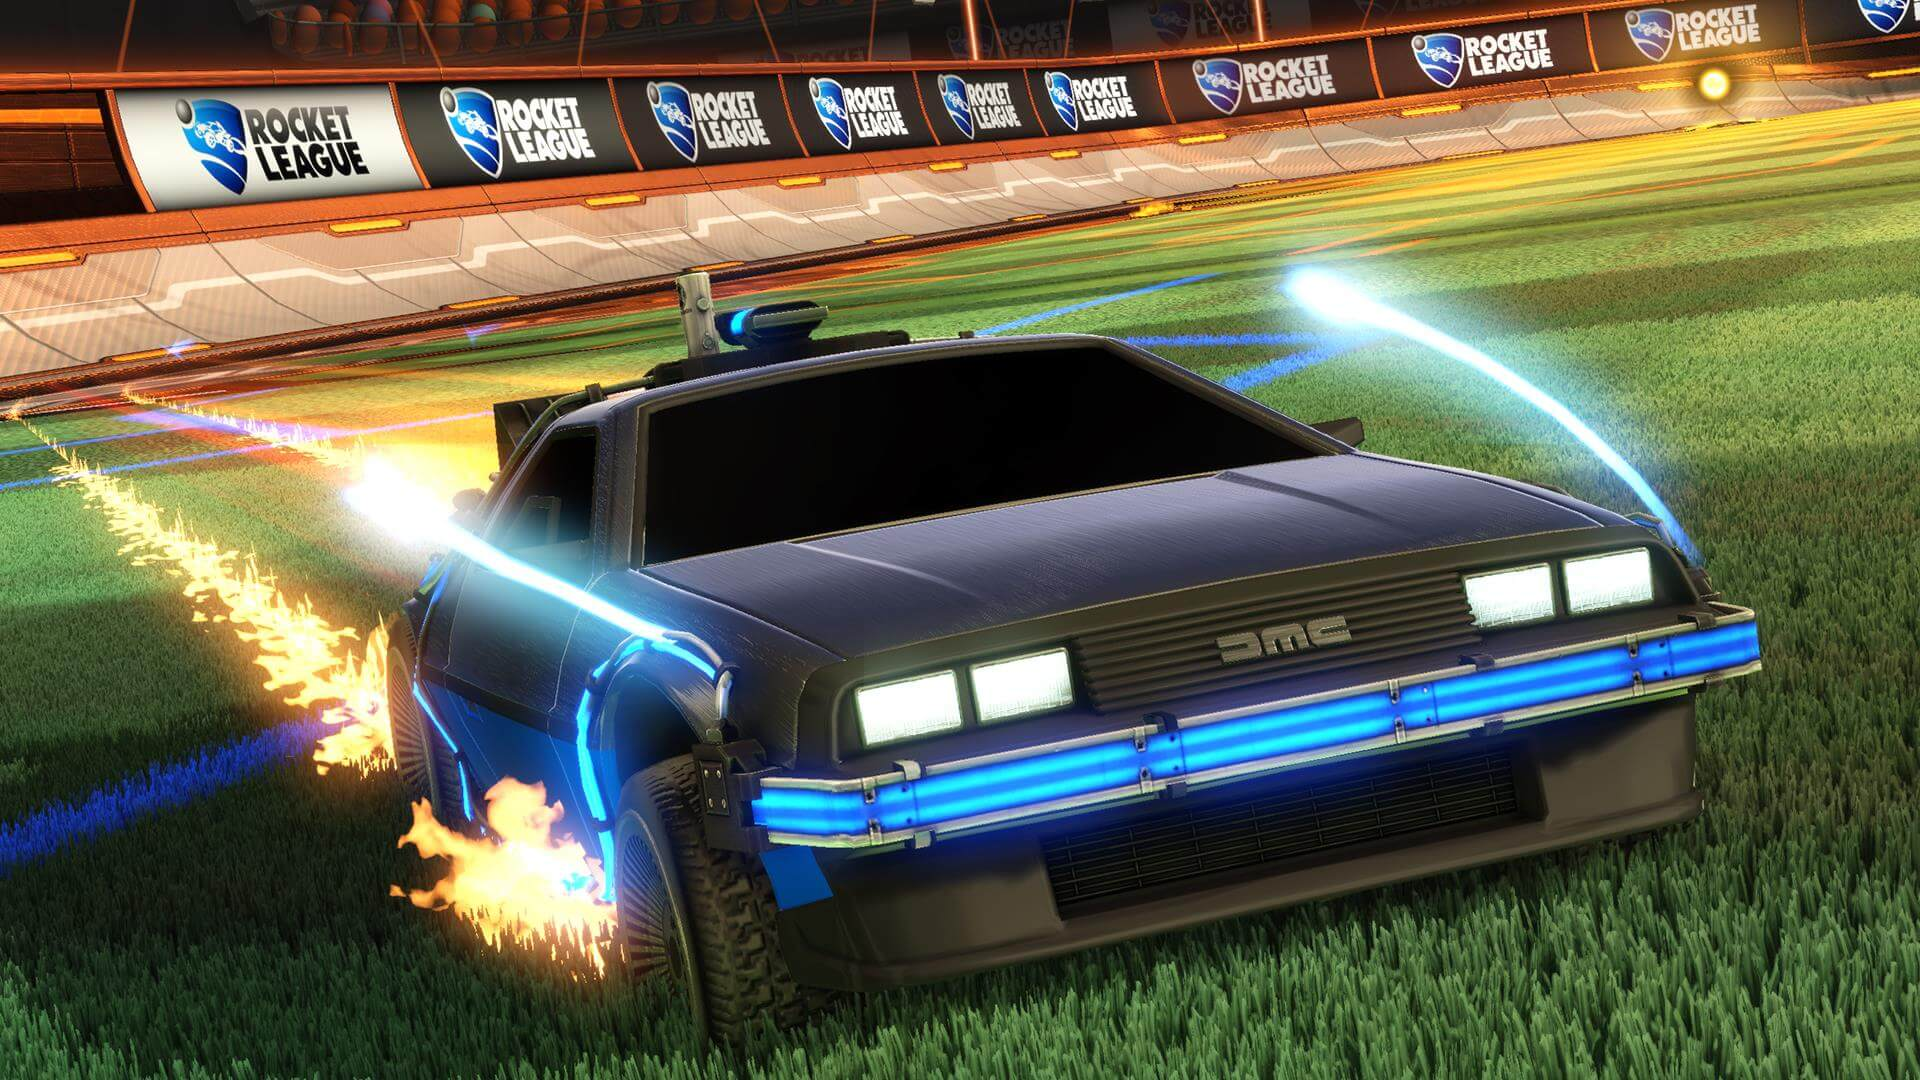 rocket_league_delorean_back_to_the_future_large (1)